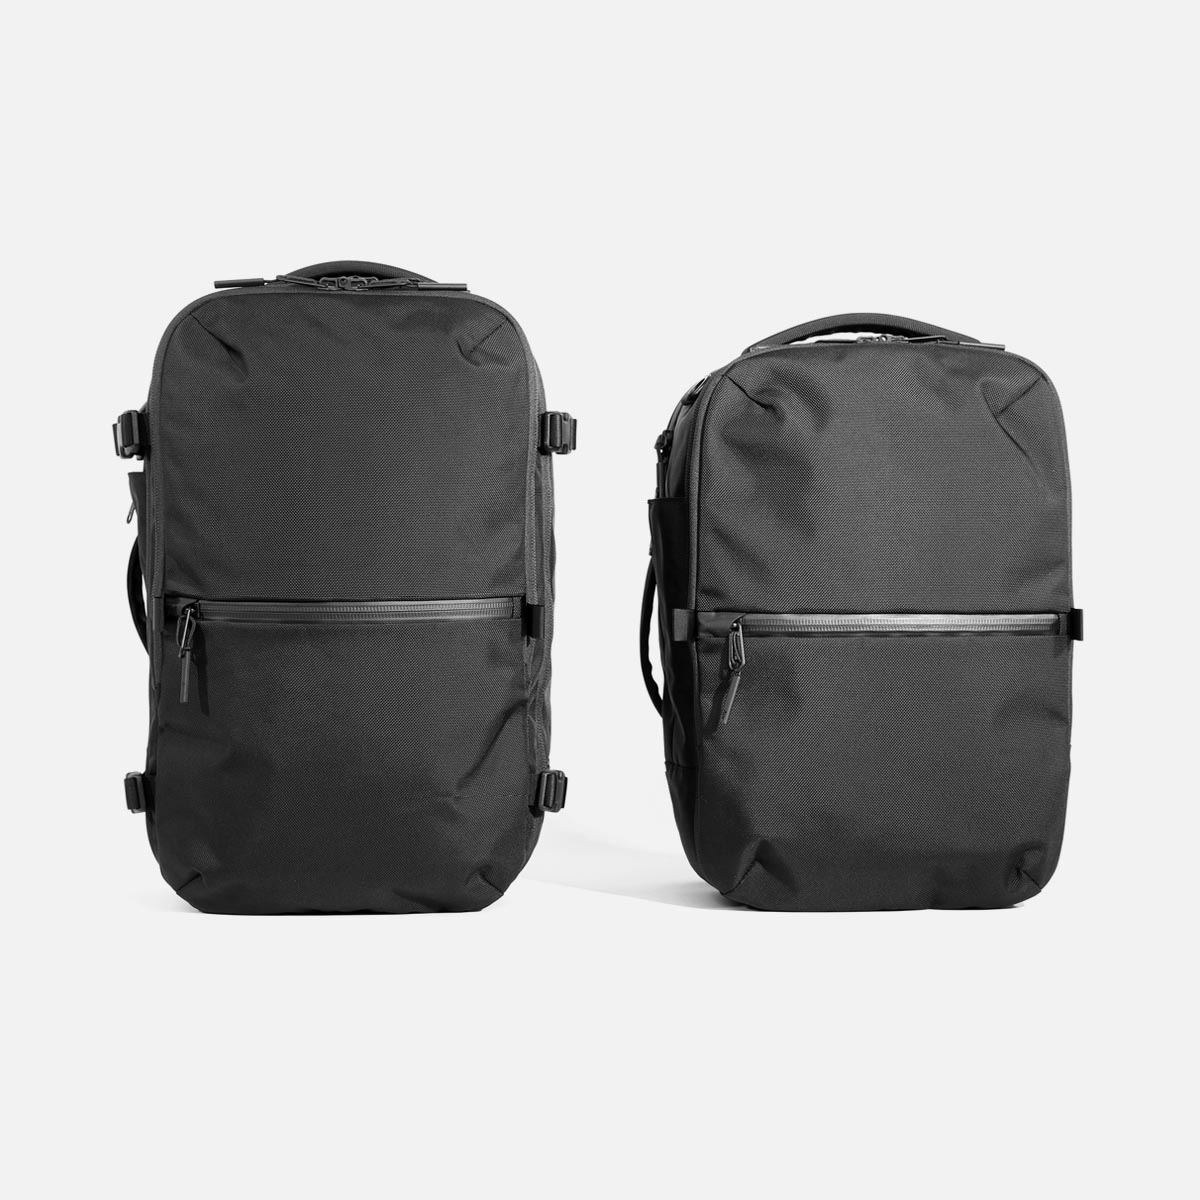 15% smaller in volume than the Travel Pack 2.